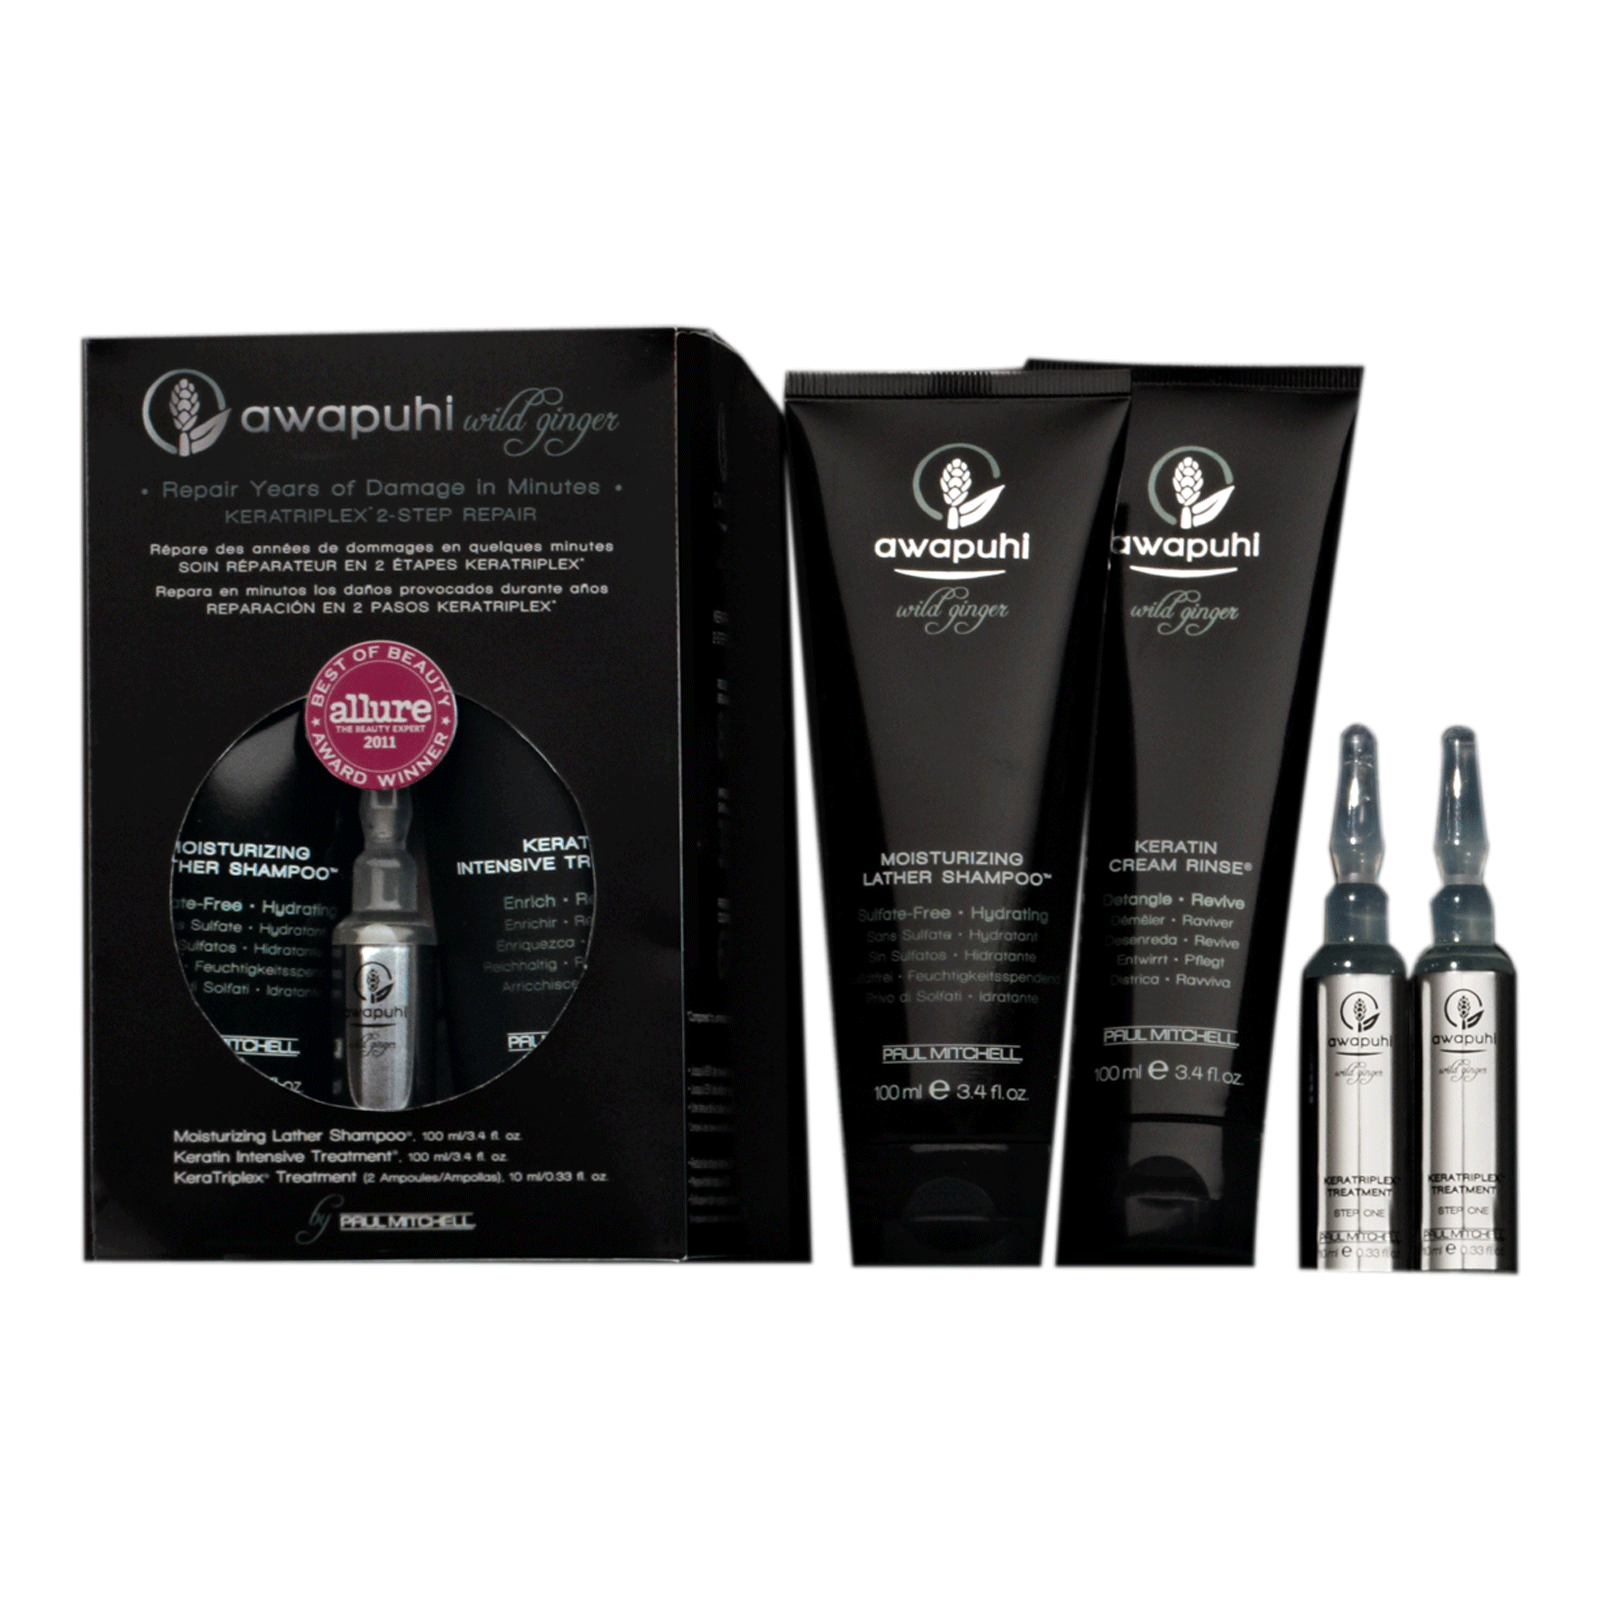 Awapuhi Wild Ginger® 2-Step Repair Kit